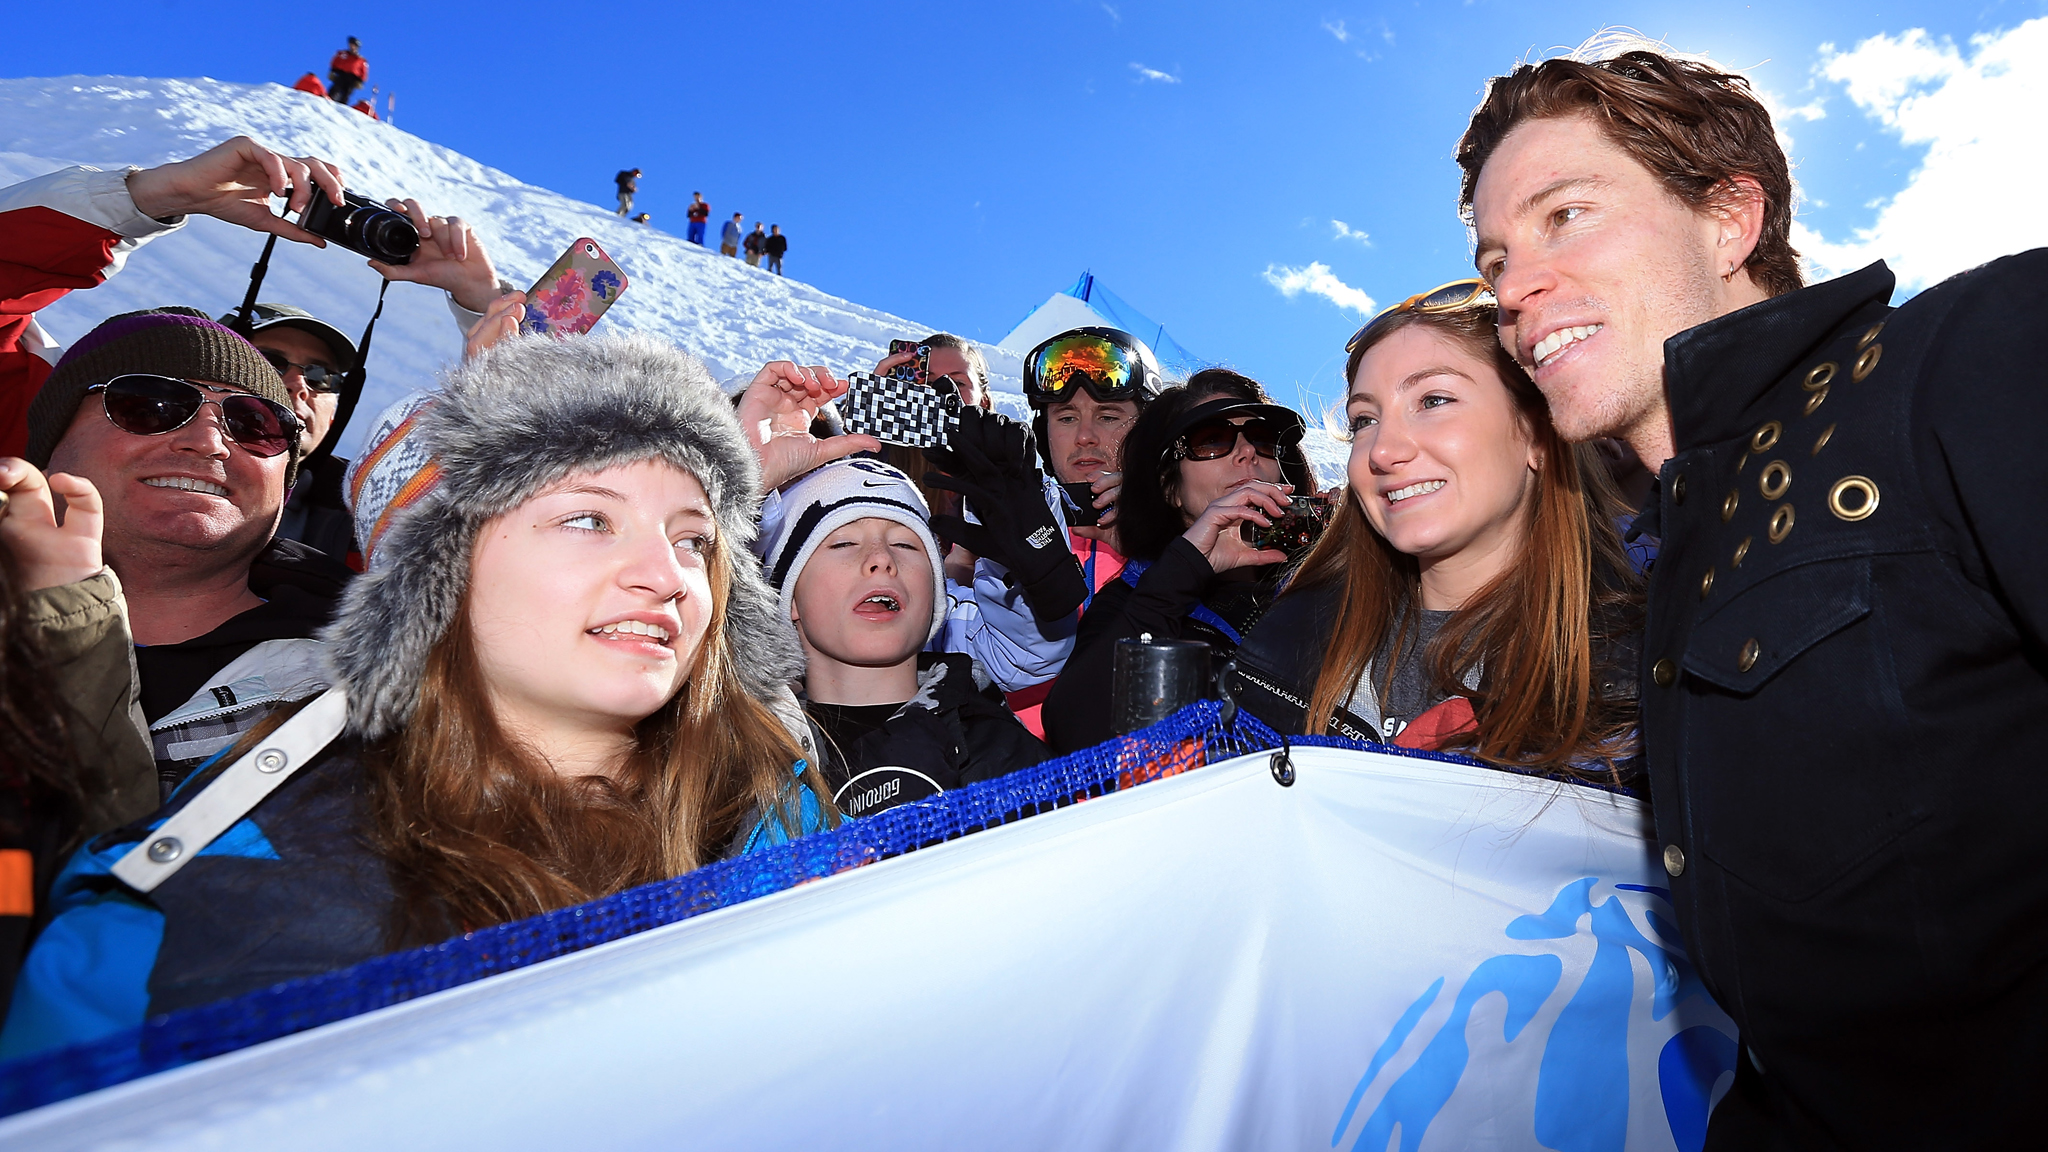 Shaun White (far right) seen at the U.S. Grand Prix in early February, will move into the event organizer role this April.